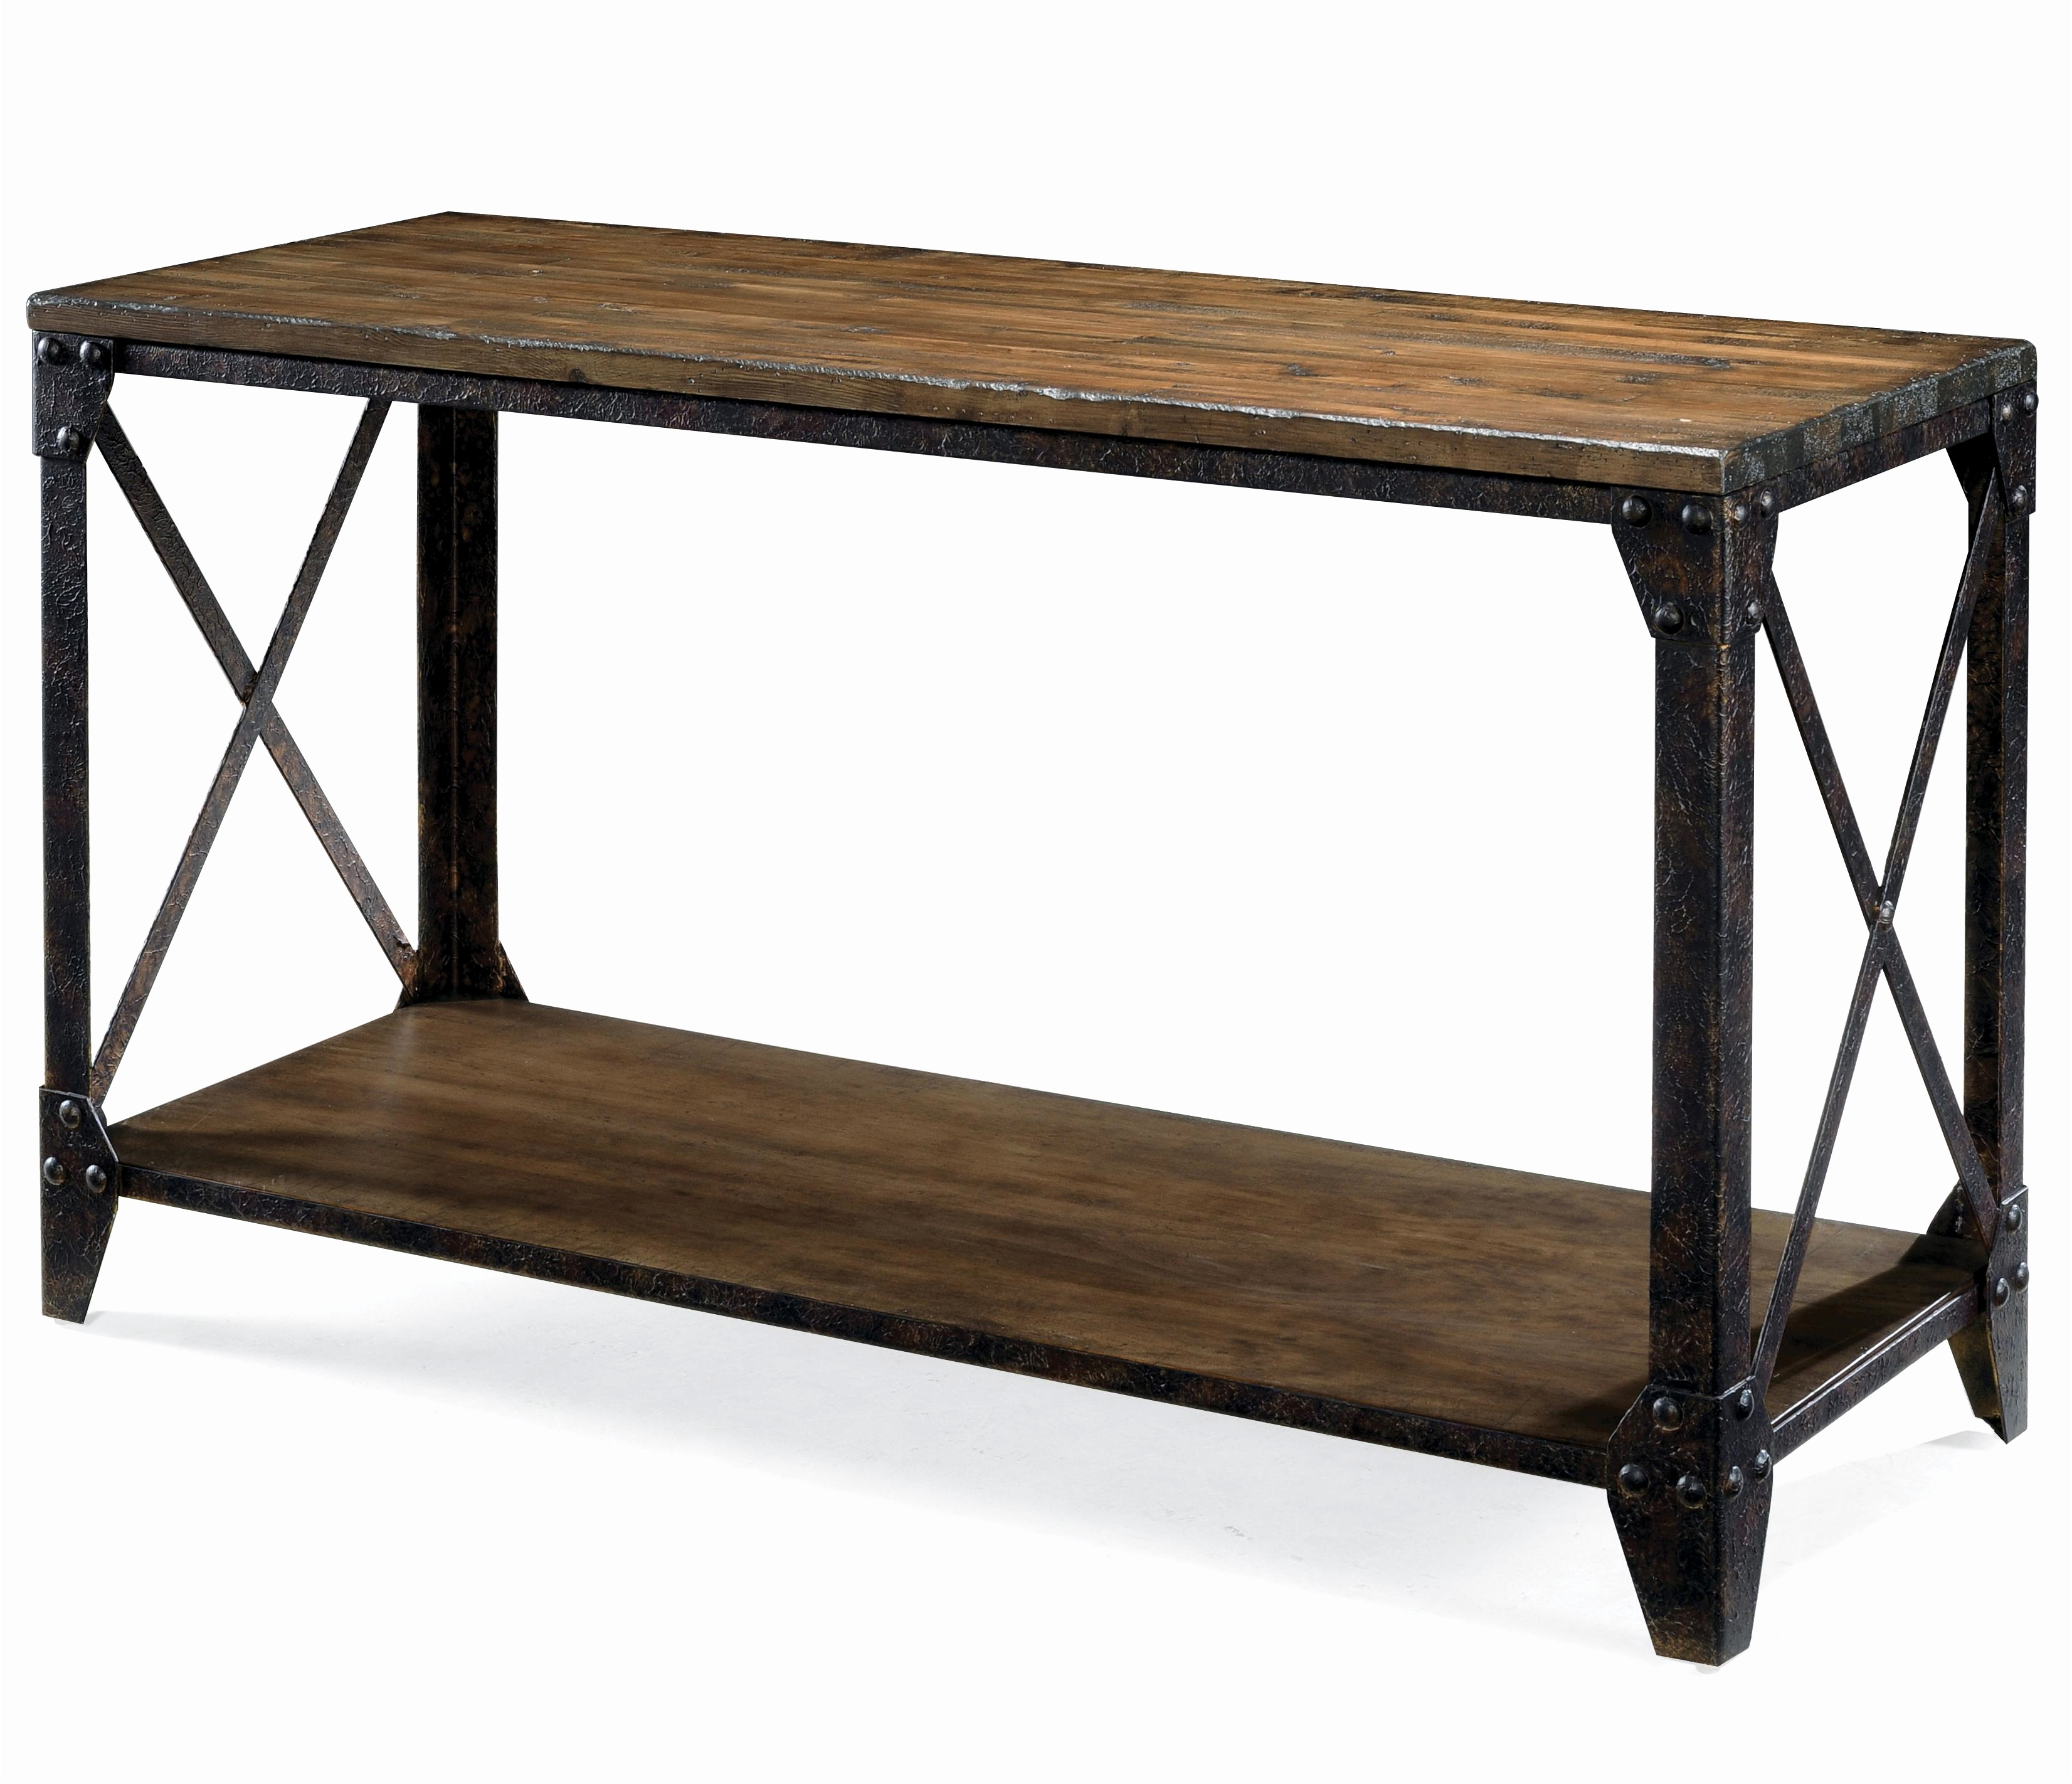 contemporary metal and wood sofa table design-Excellent Metal and Wood sofa Table Inspiration